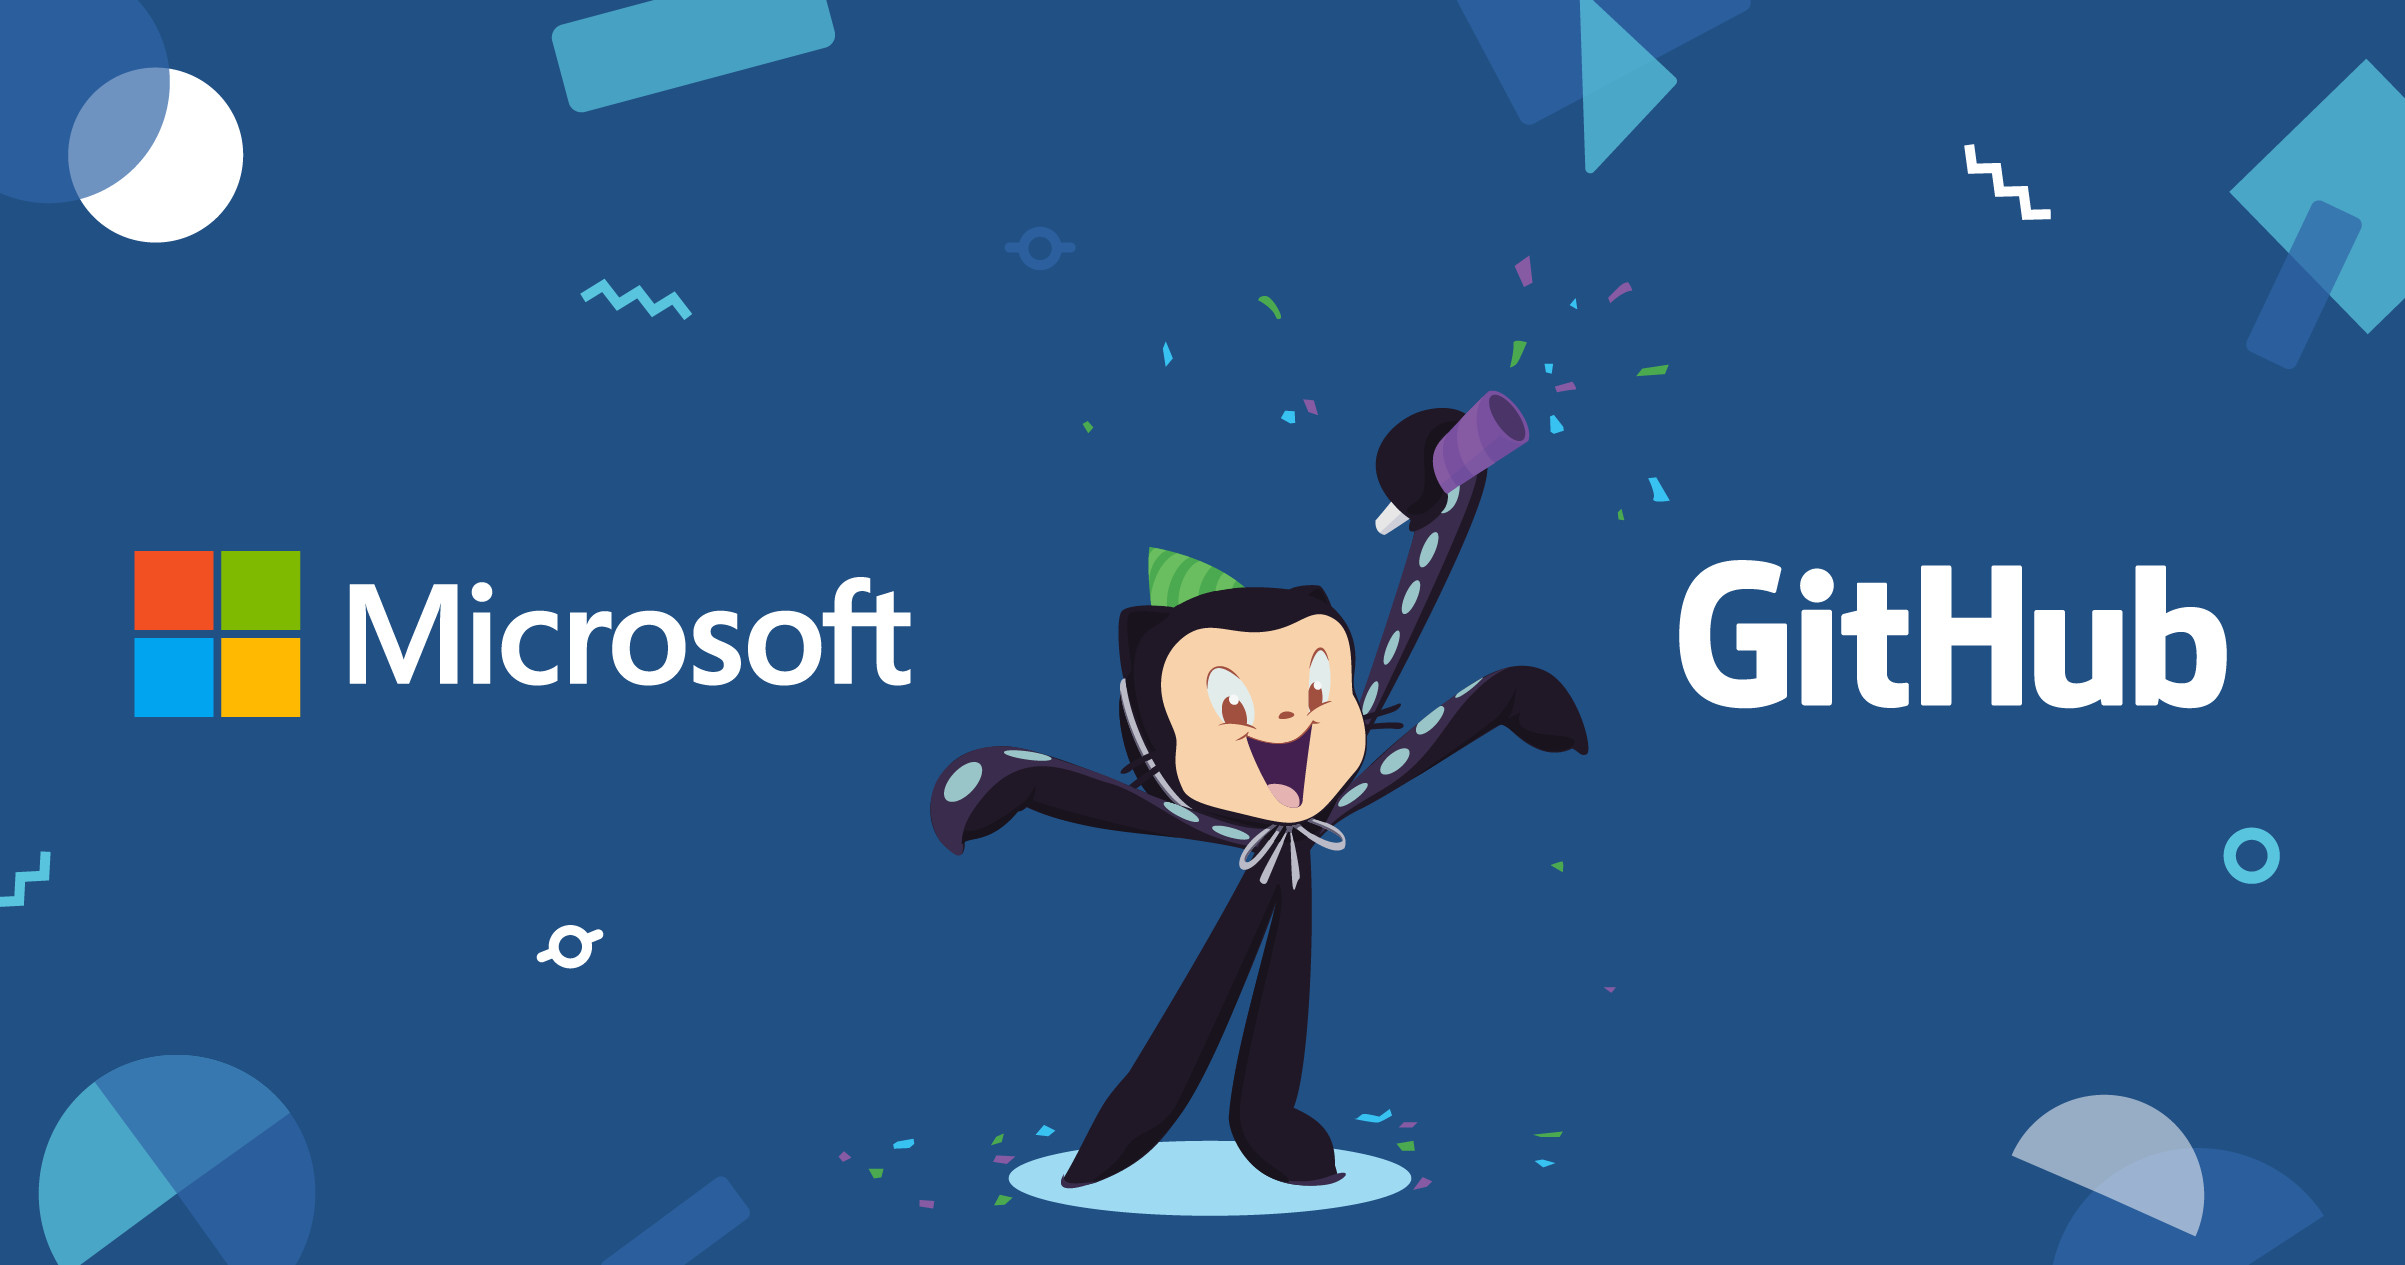 Microsoft is buying code-sharing site GitHub, say reports